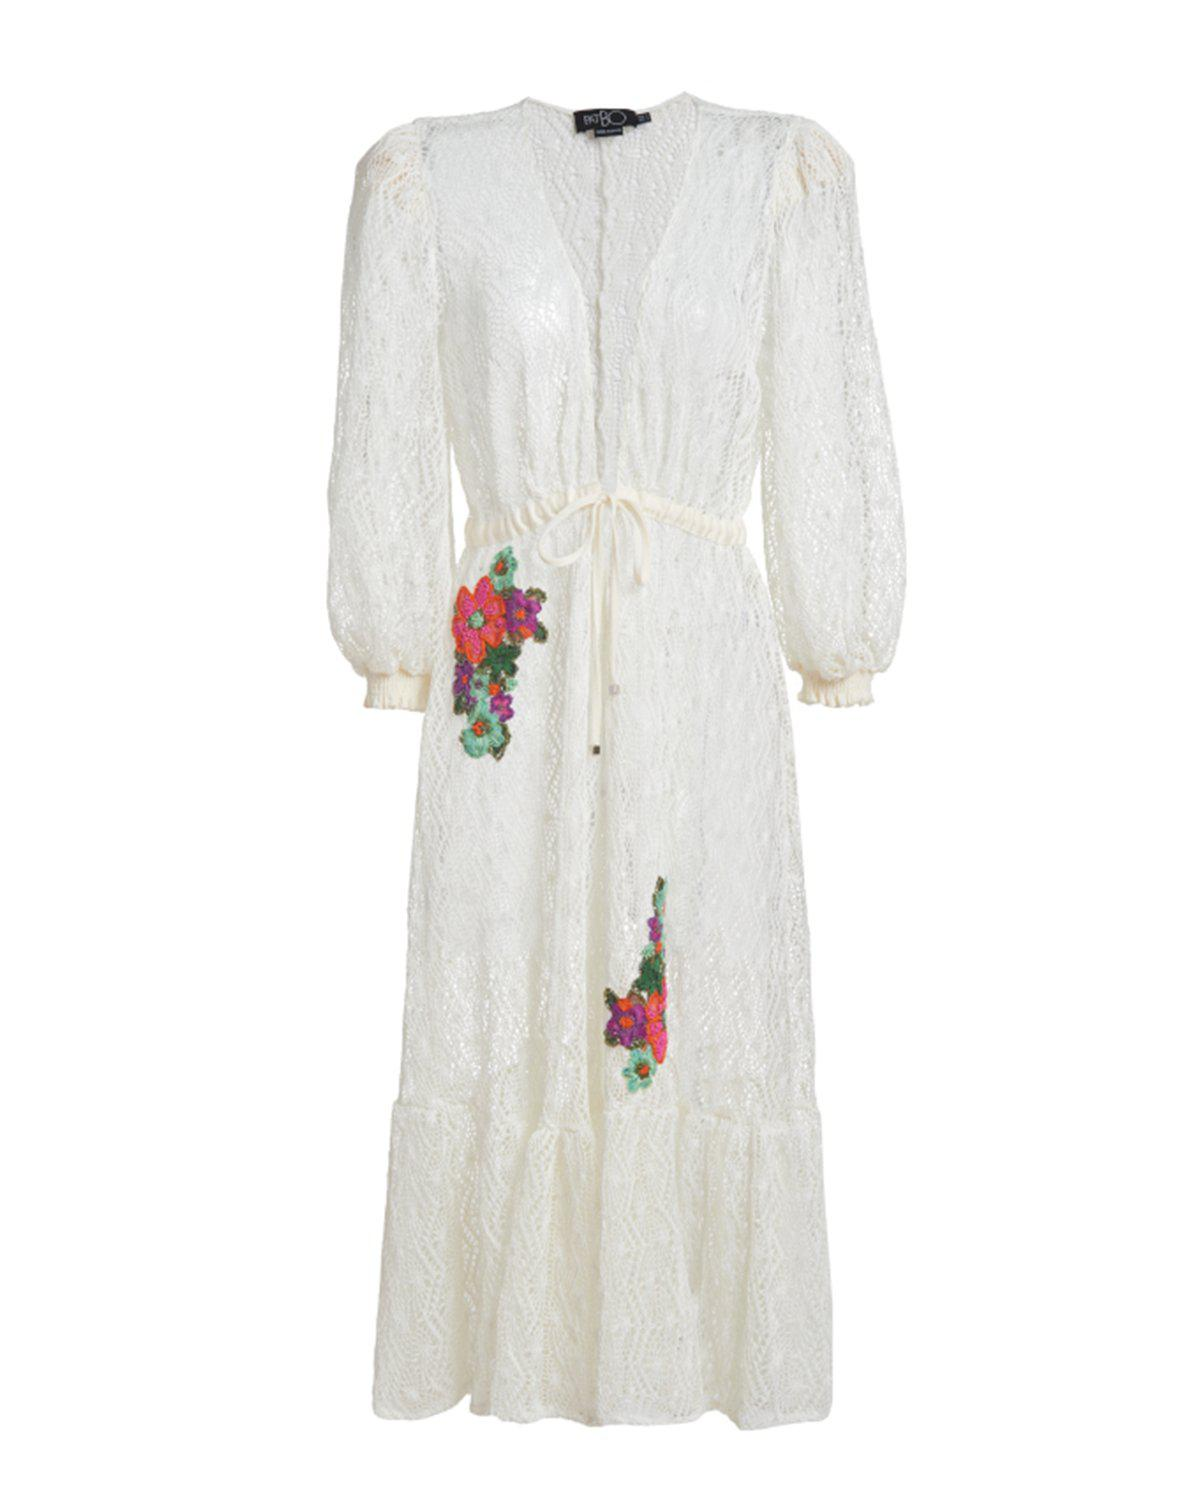 Embroidered Crochet Coverup Dress 1